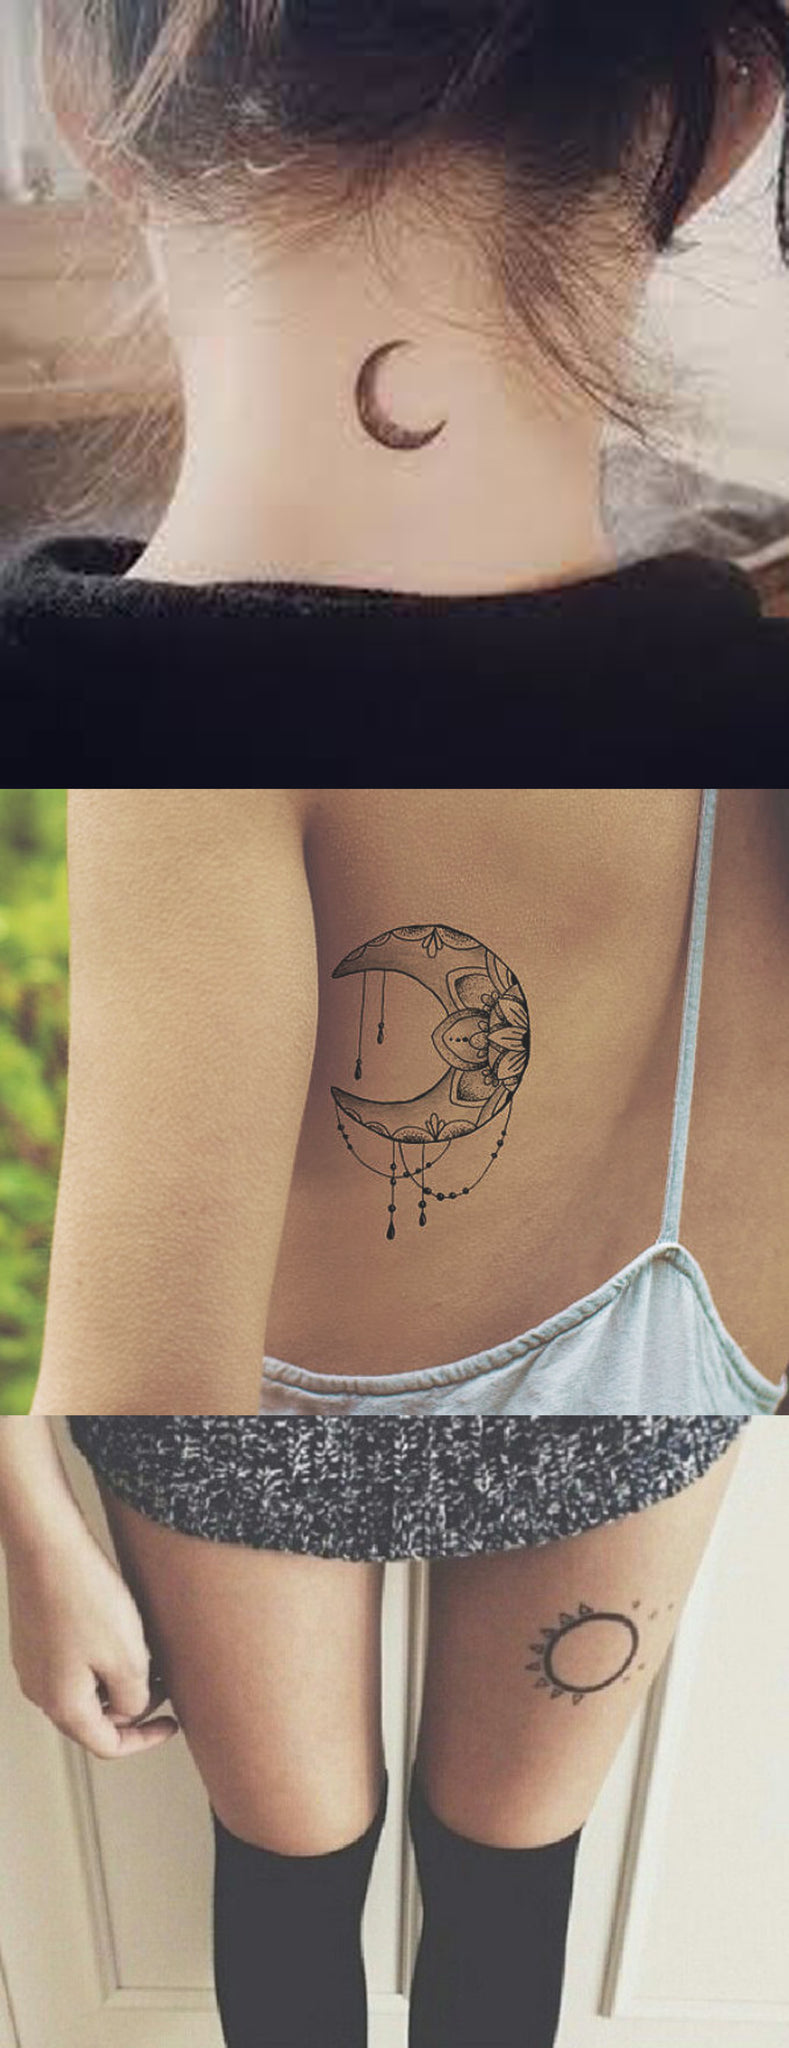 Minimal Simple Tattoo Ideas for Women at MyBodiArt.com - Back of Neck Moon Tatt - Sun Thigh Tat - Tribal Moon & Sun Rib